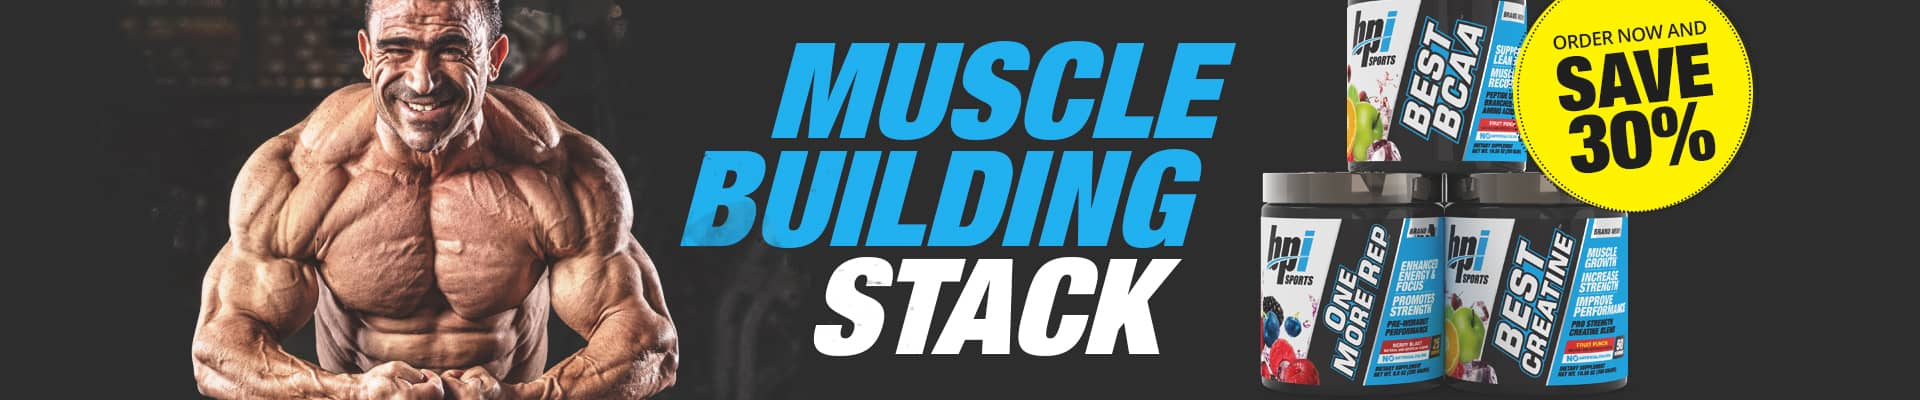 Muscle Building Stack Promo